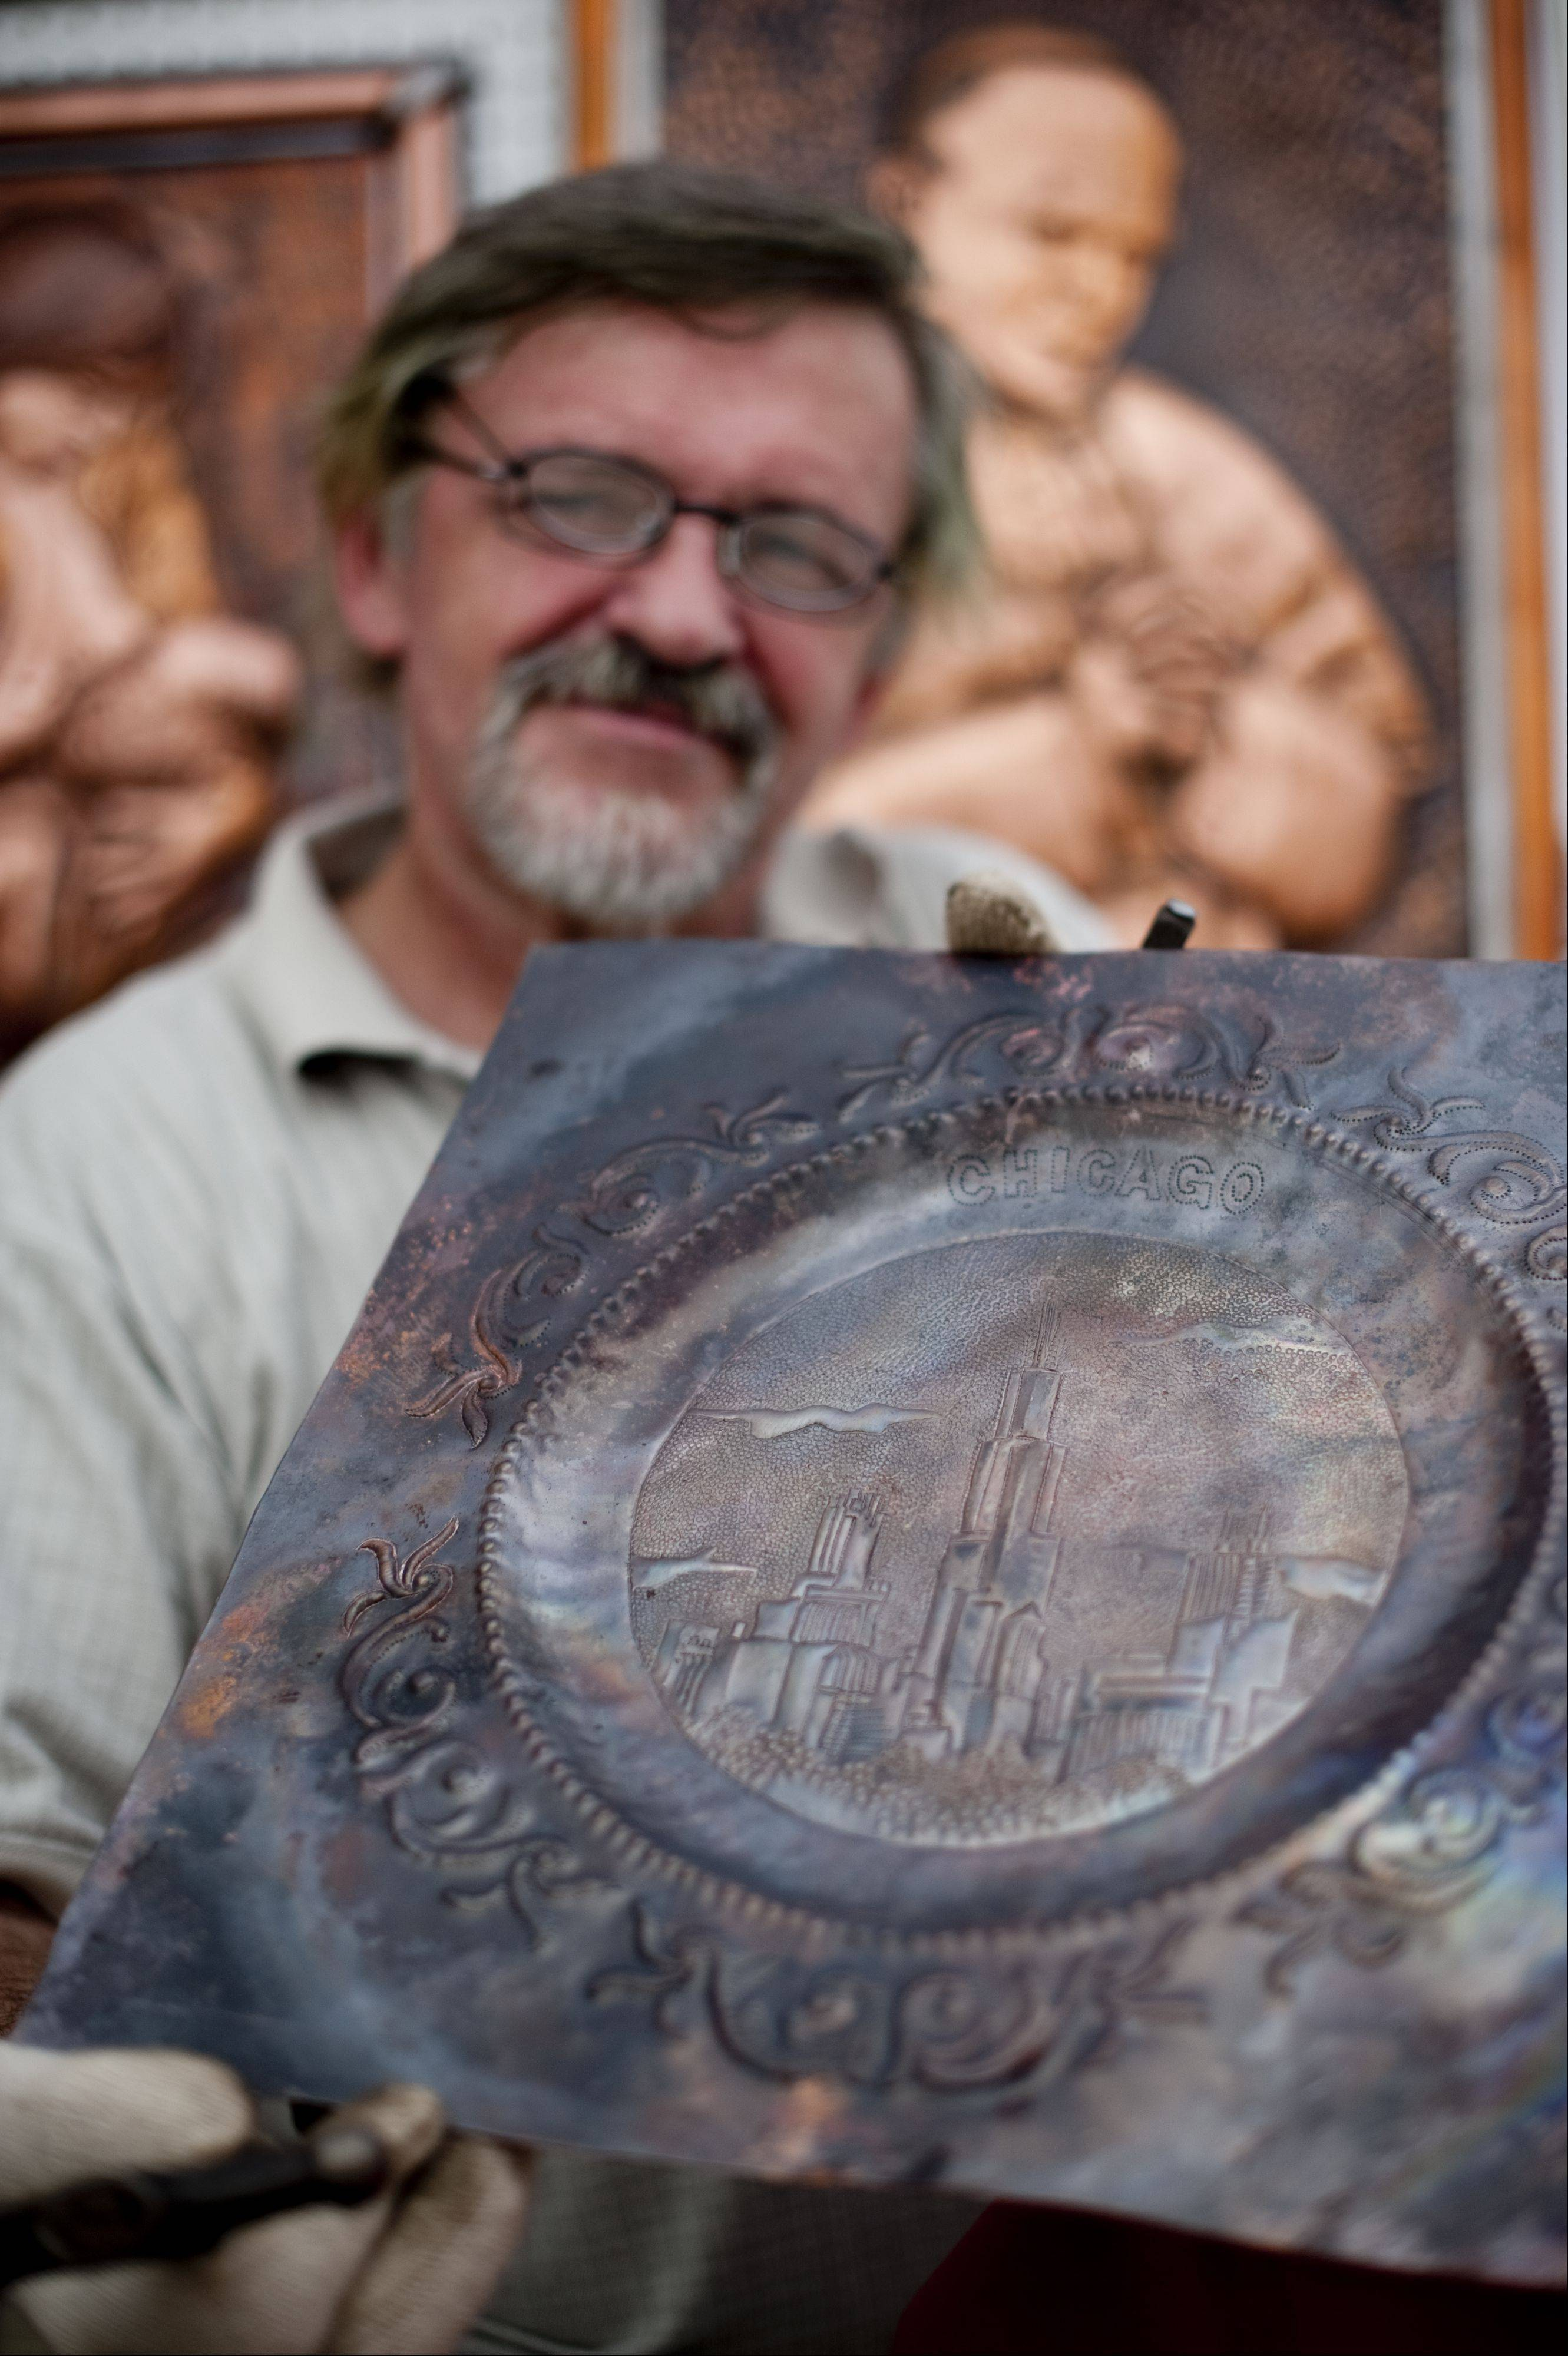 The metal artwork of Mount Prospect artist Jozef Andrzejczuk will again be featured at the Art & Soul on the Fox in downtown Elgin. The festival features artists working with a variety of mediums including ceramics, glass, metal, photography, watercolors, wood and more.